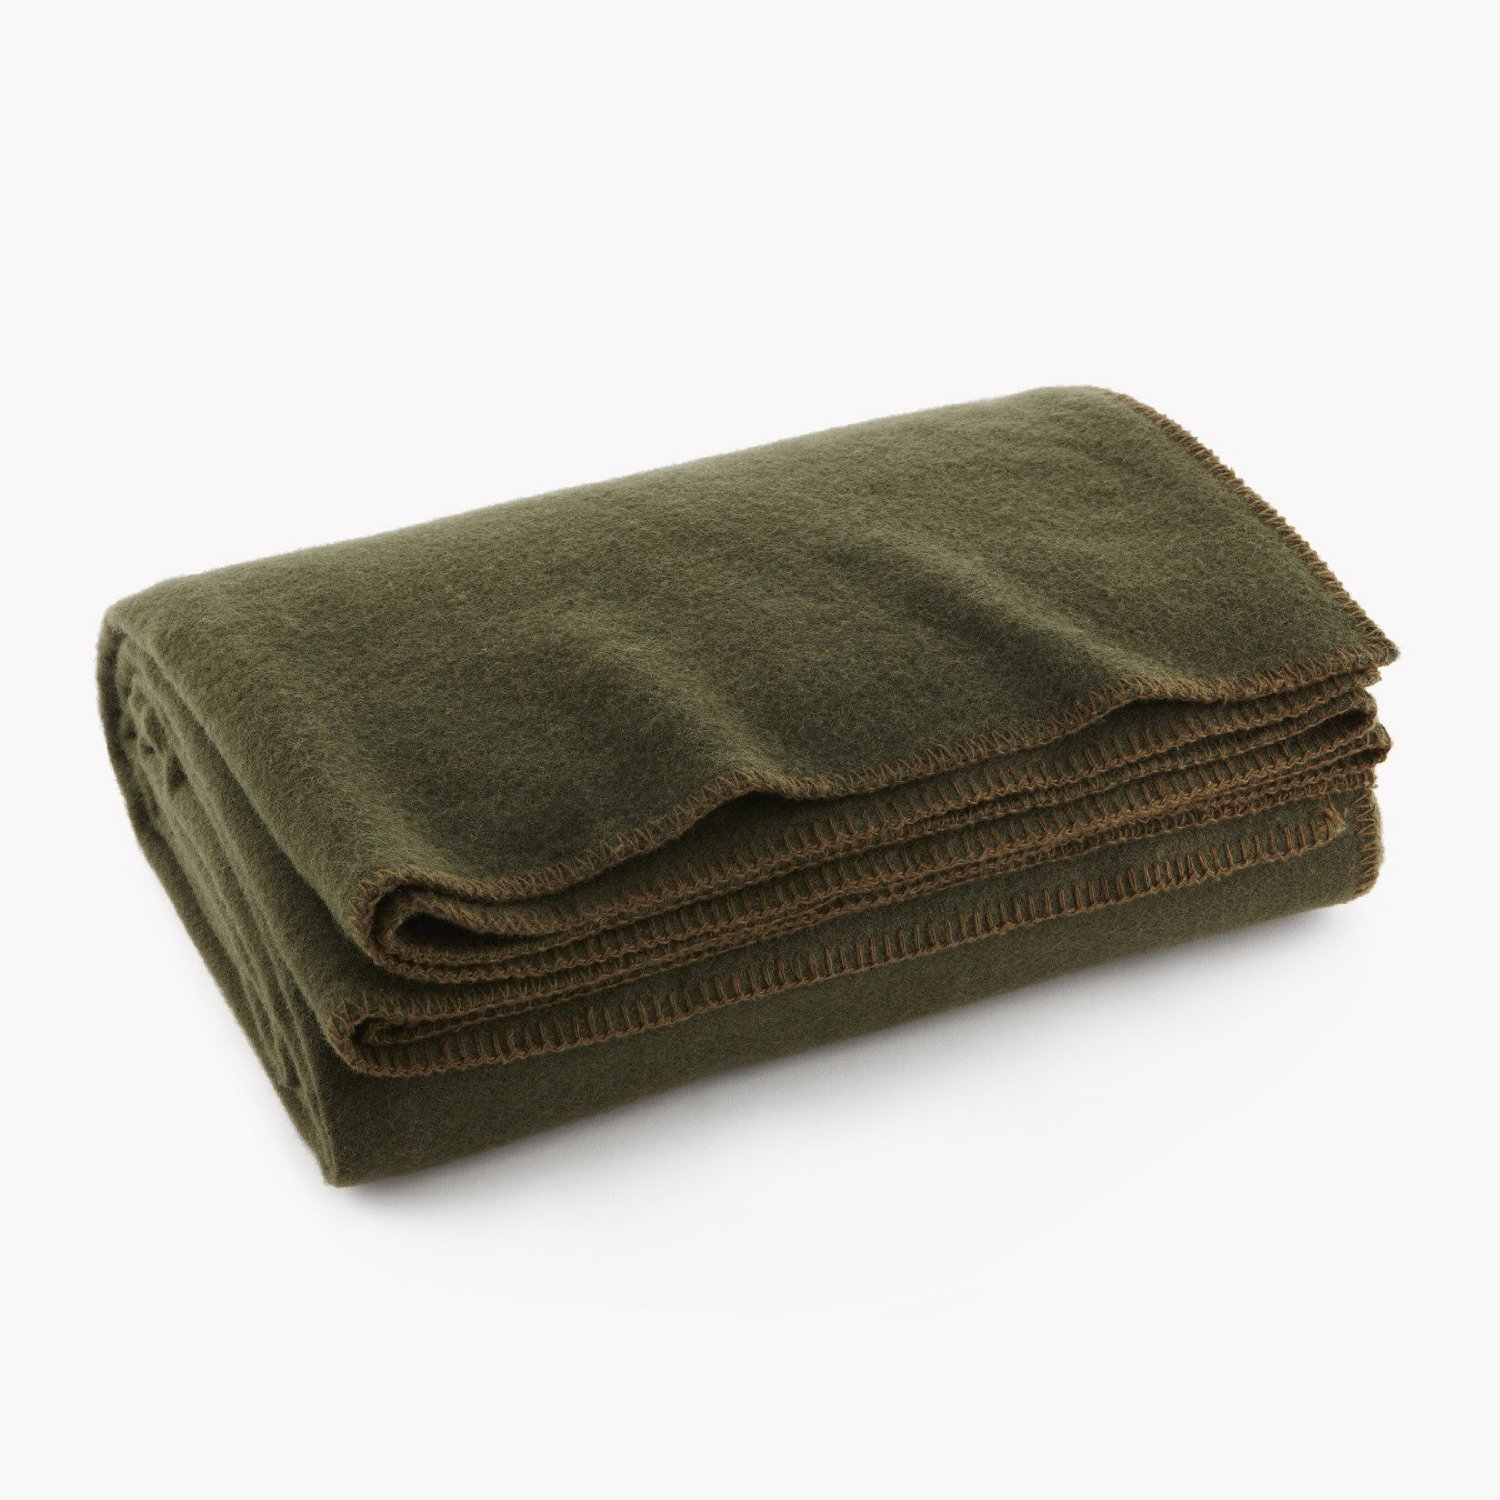 amazoncom olive drab green warm wool fire retardent blanket   - amazoncom olive drab green warm wool fire retardent blanket  x  (wool)us military sports  outdoors